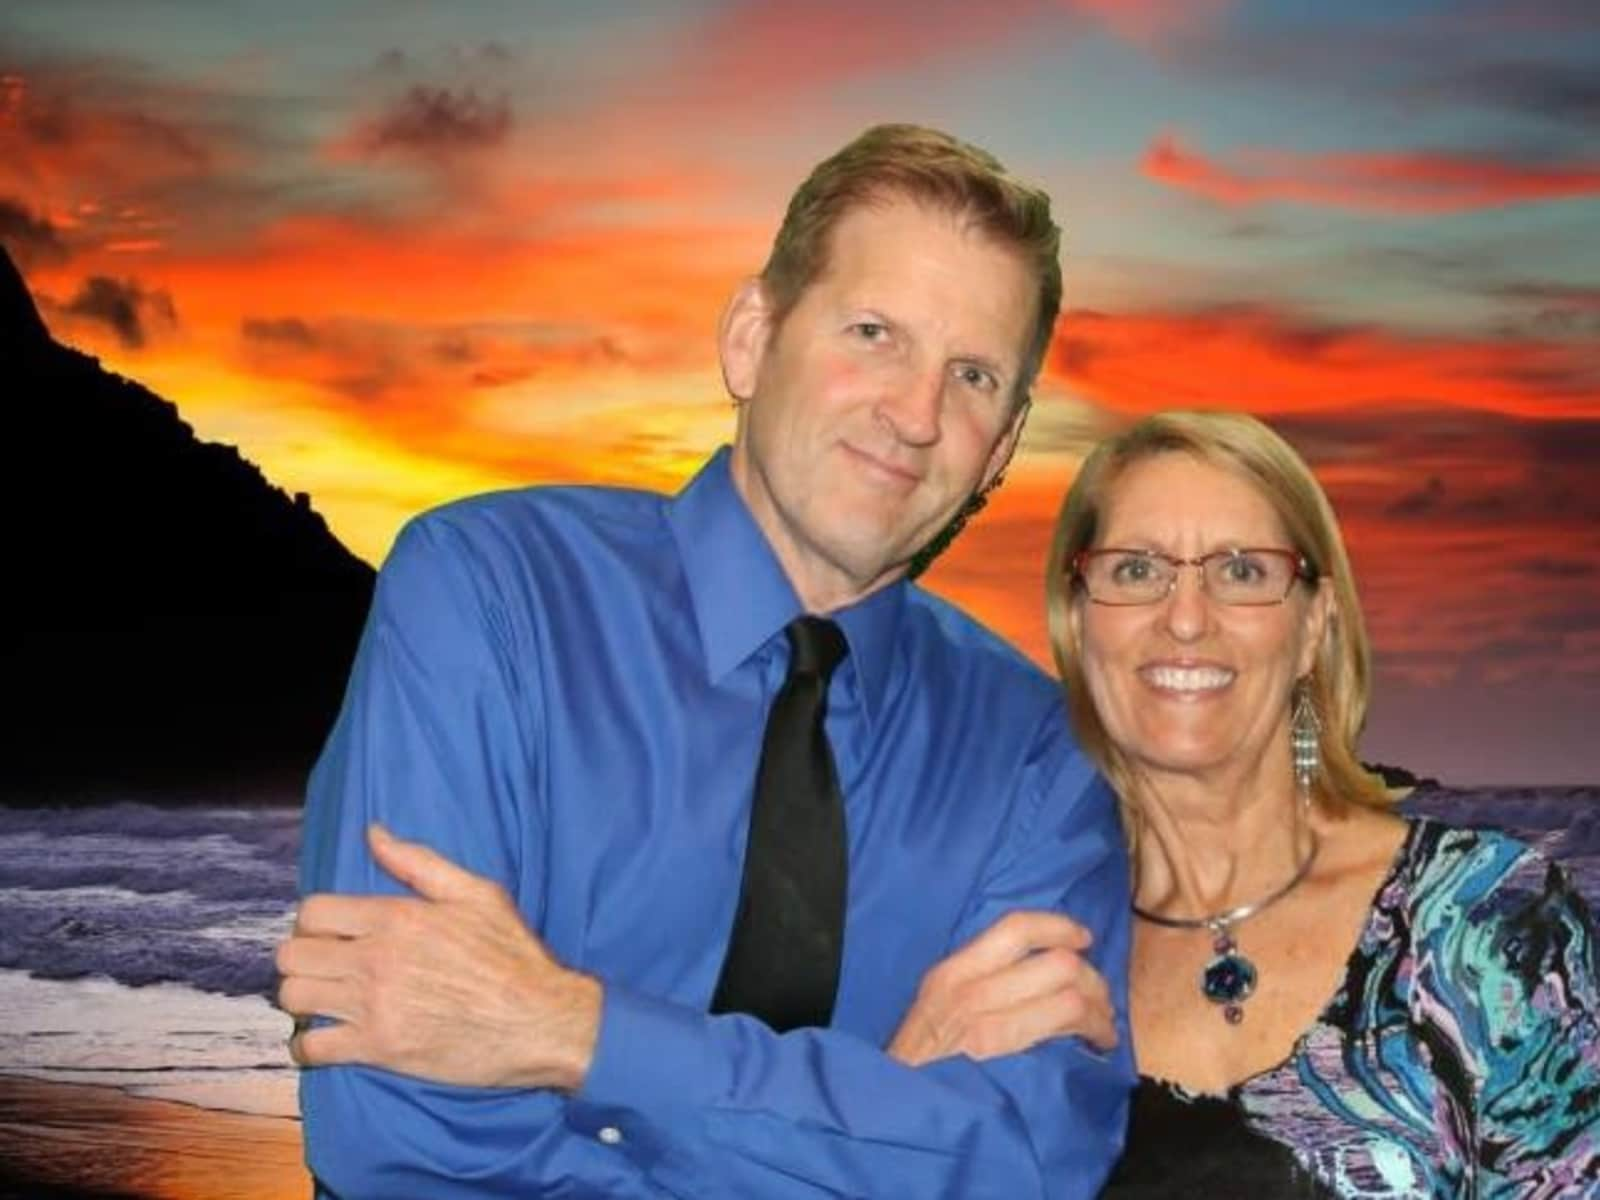 Diane & Al from Baltimore, Maryland, United States